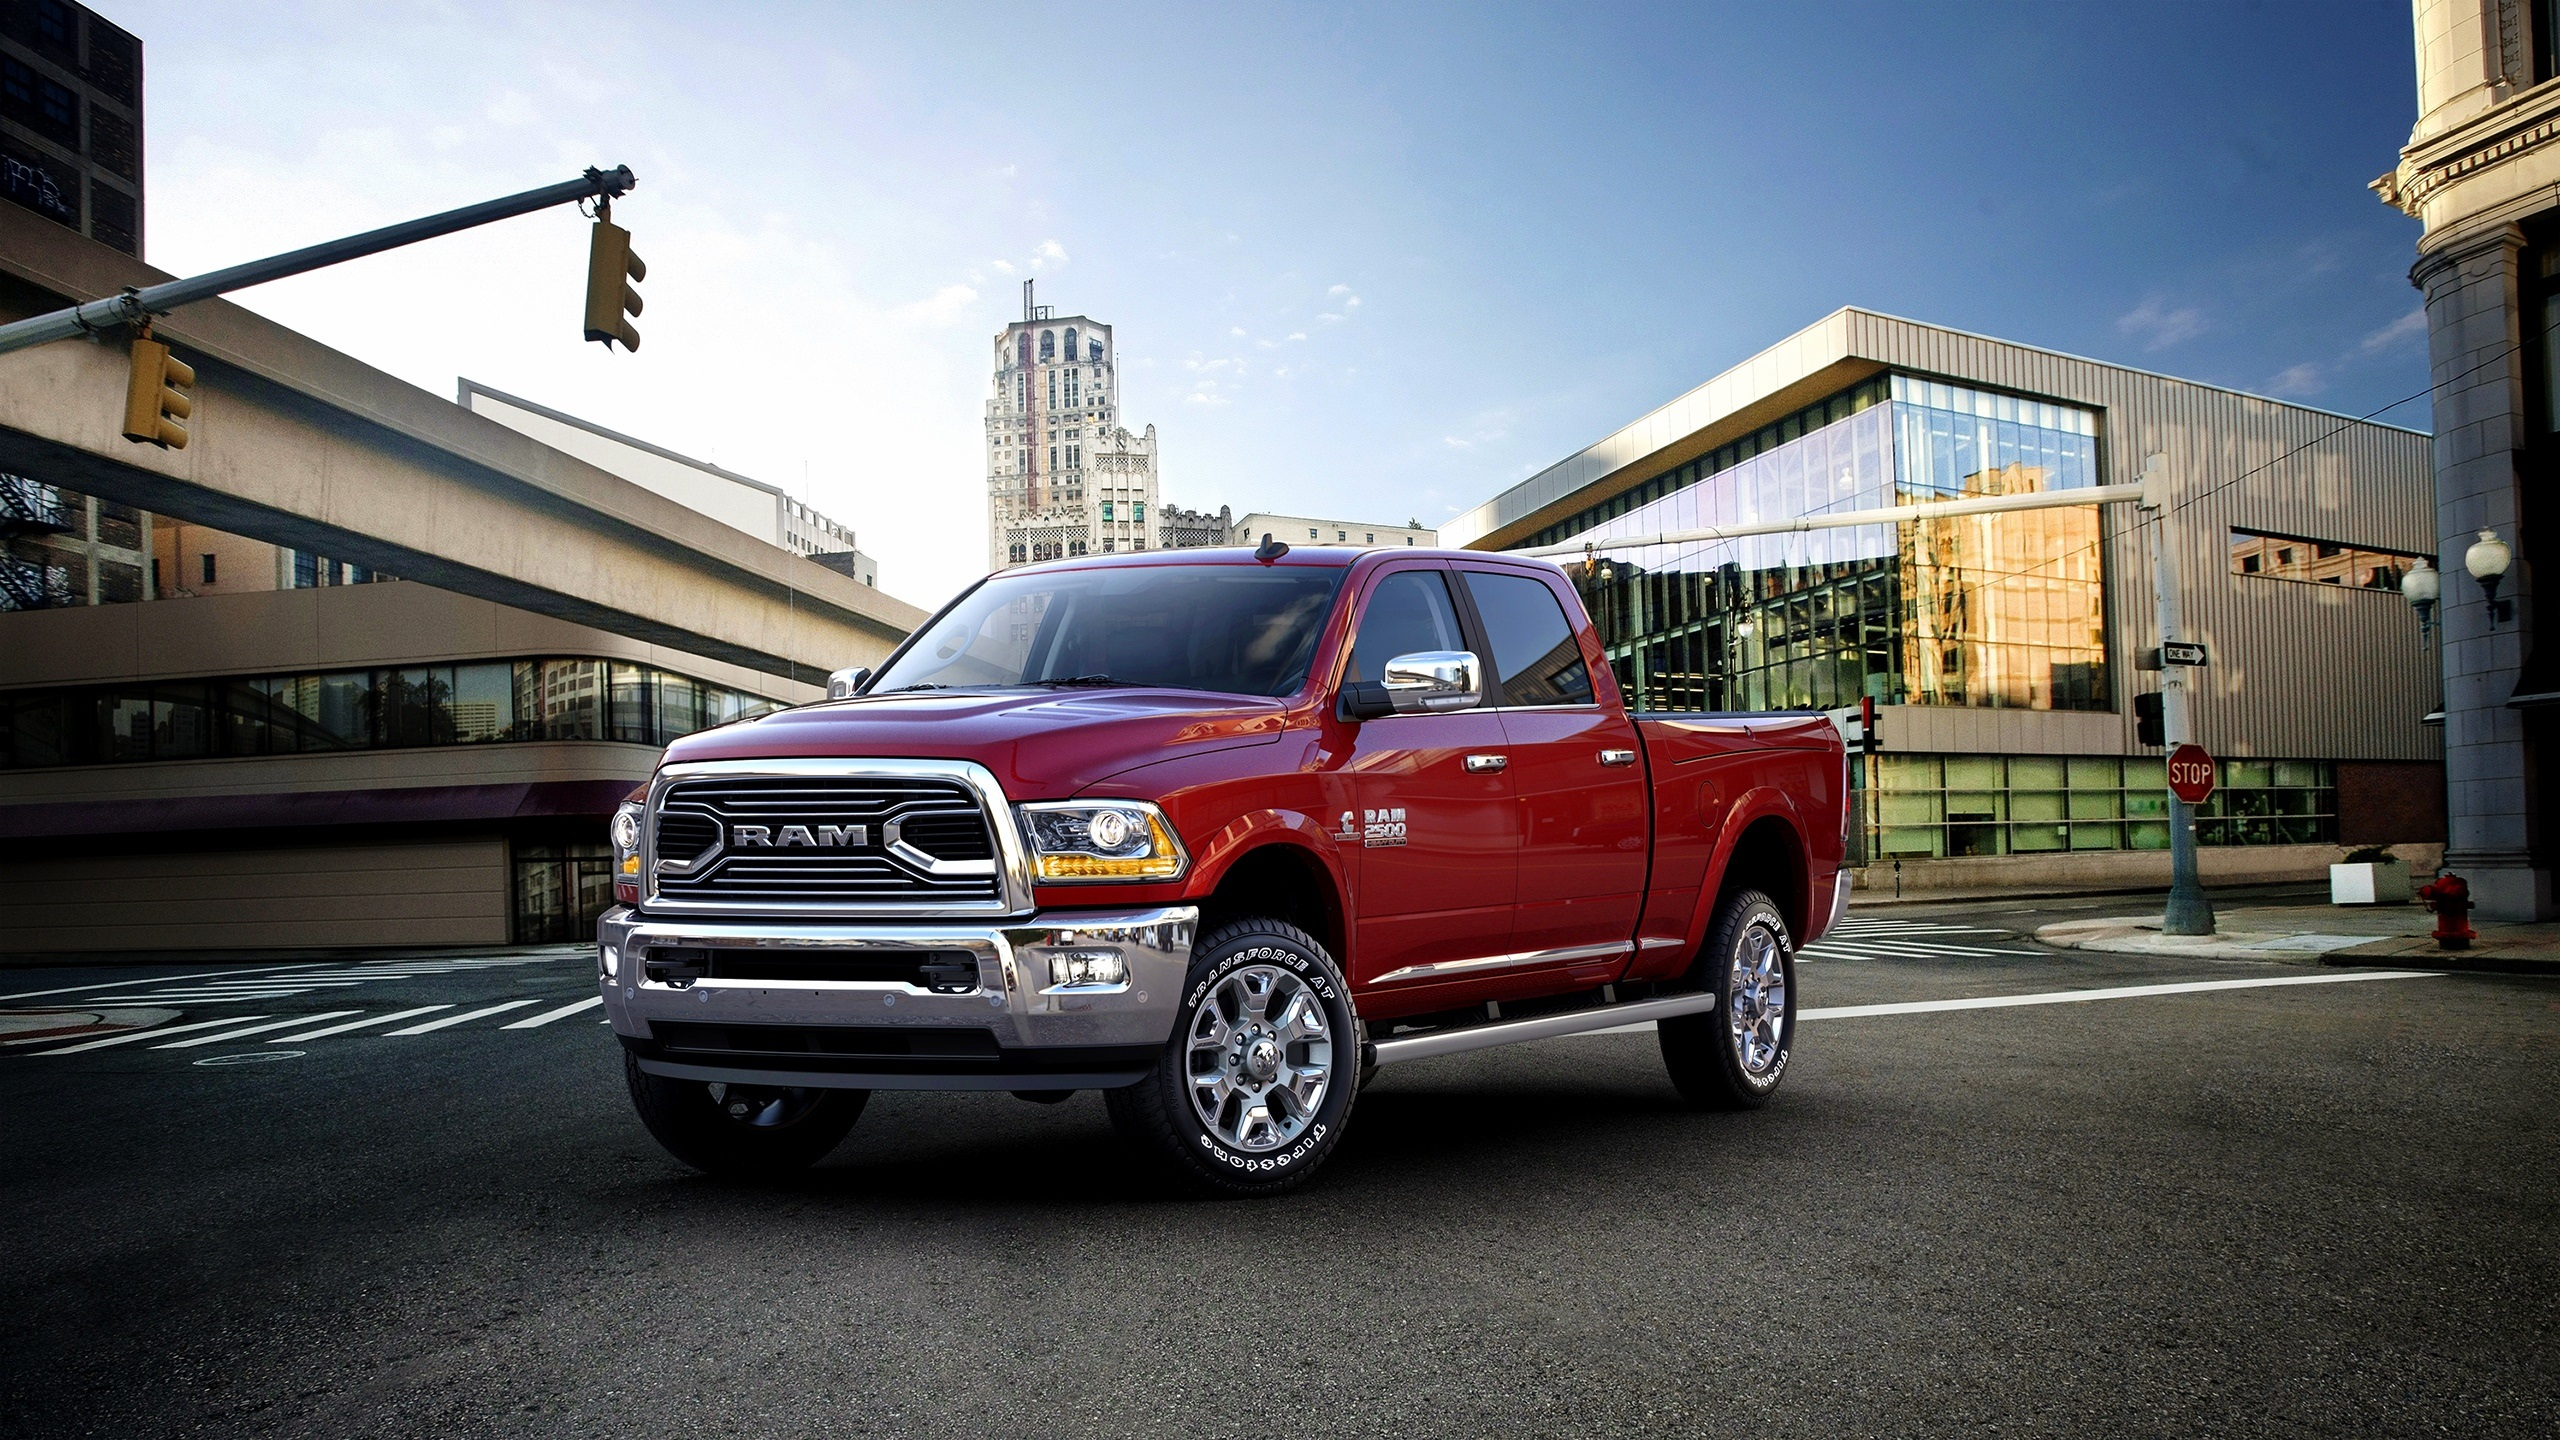 Dodge Ram Wallpaper 2560x1440 Download Hd Wallpaper Wallpapertip